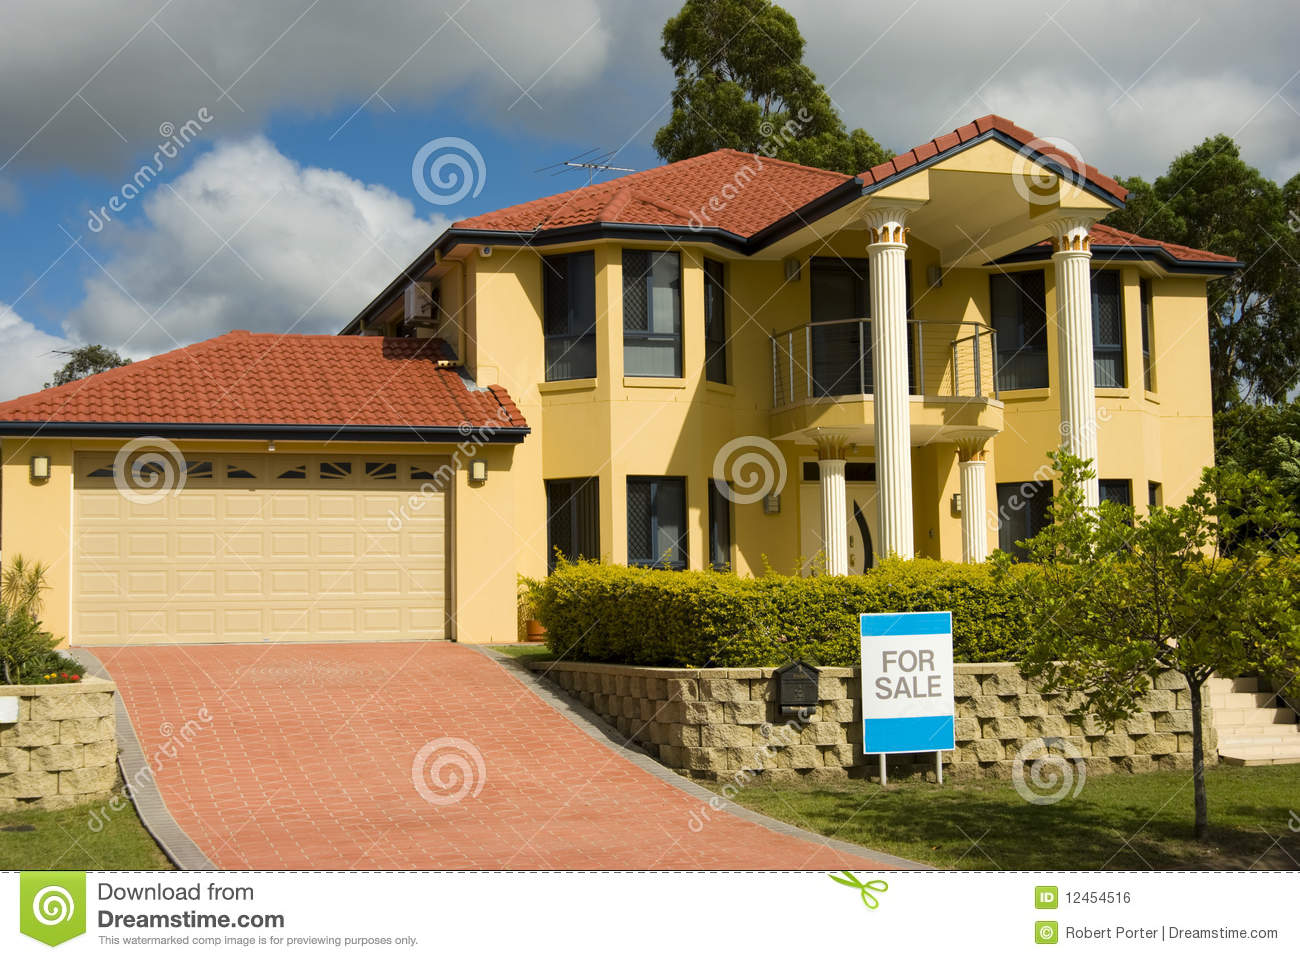 Modern house for sale royalty free stock image image for Beautiful modern homes for sale